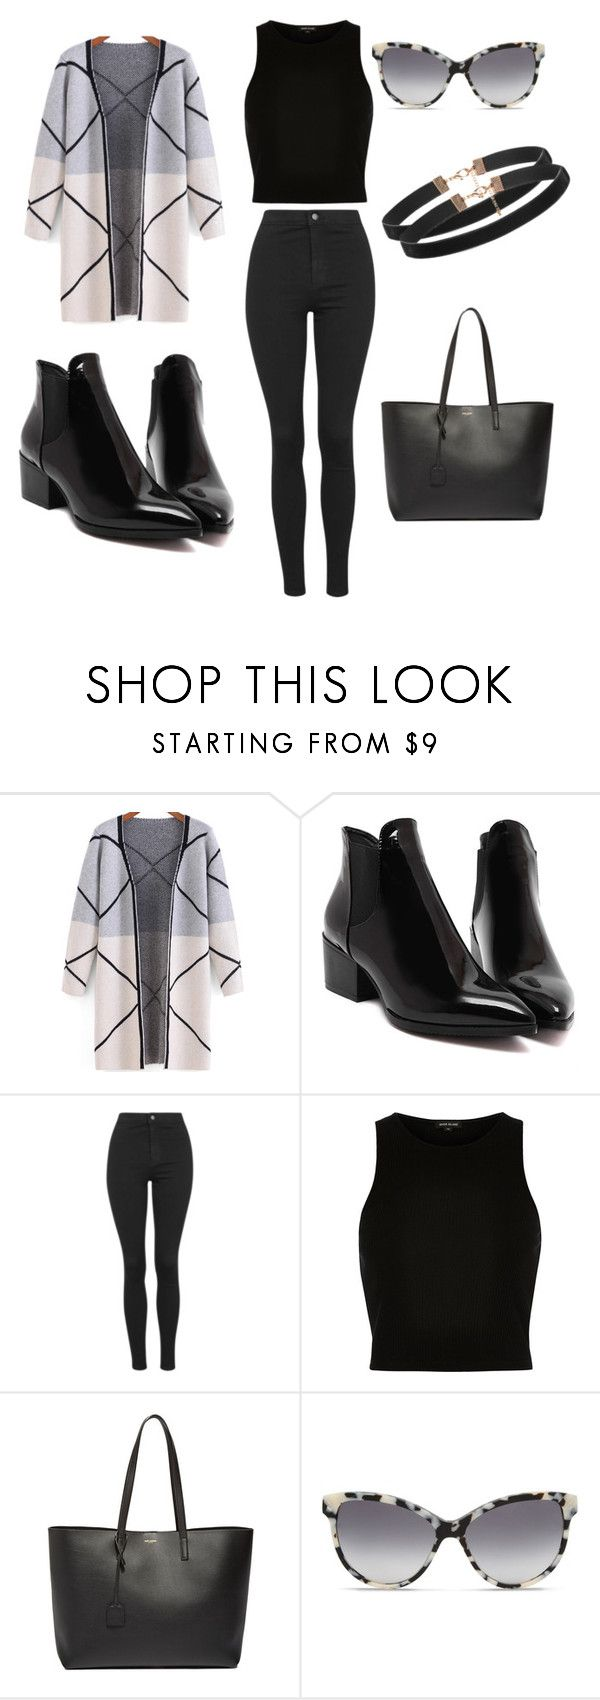 """""""Untitled #13"""" by molly-mahaffey on Polyvore featuring Topshop, River Island, Yves Saint Laurent, STELLA McCARTNEY, women's clothing, women, female, woman, misses and juniors"""